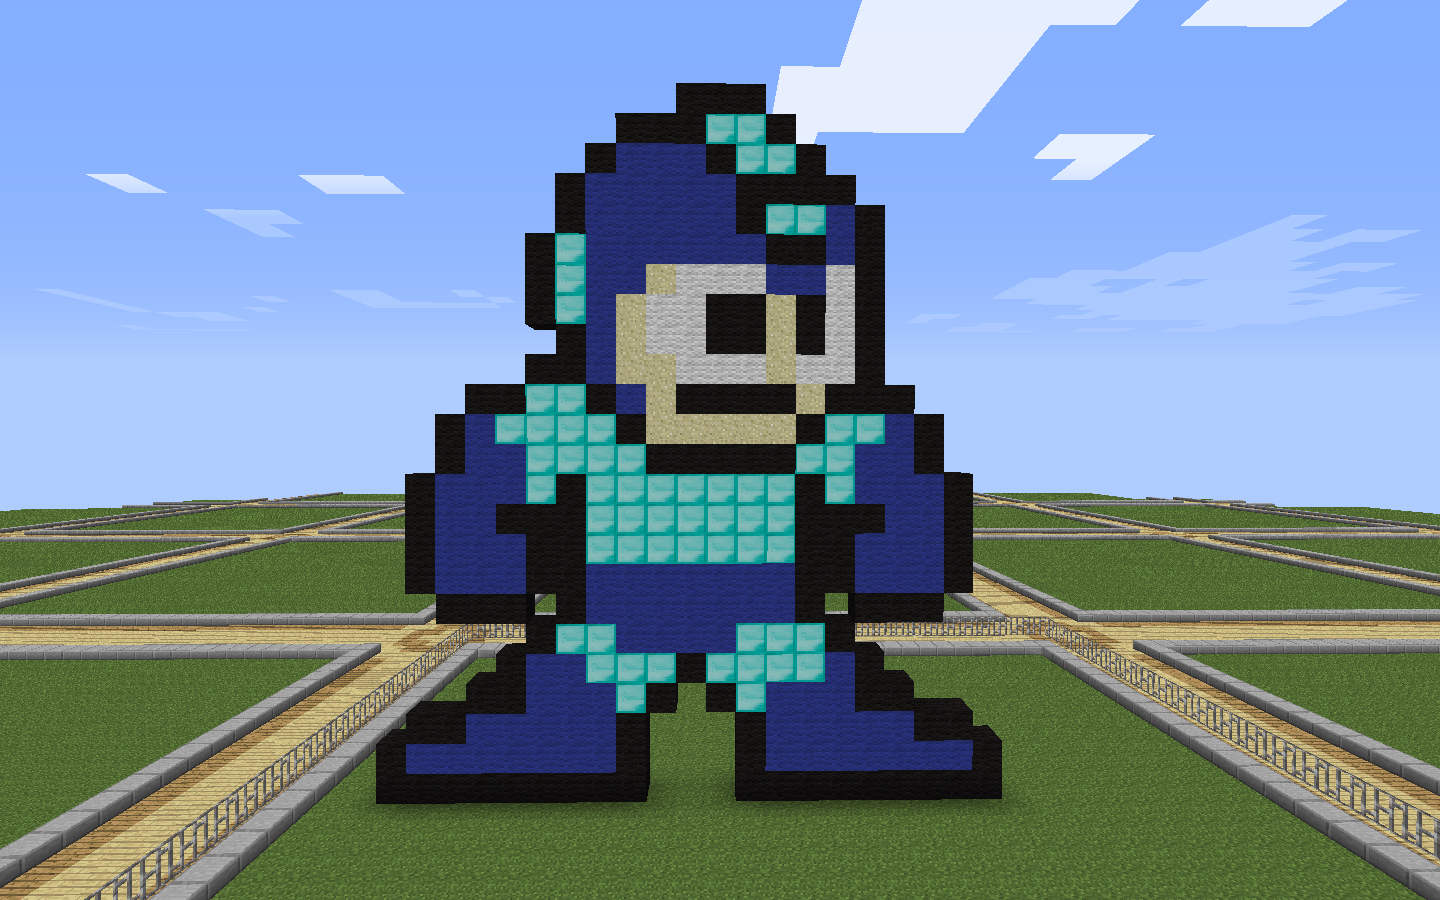 Creative pixel art megaman building ideas minecraft pixel art building ideas - Minecraft house ideas ...